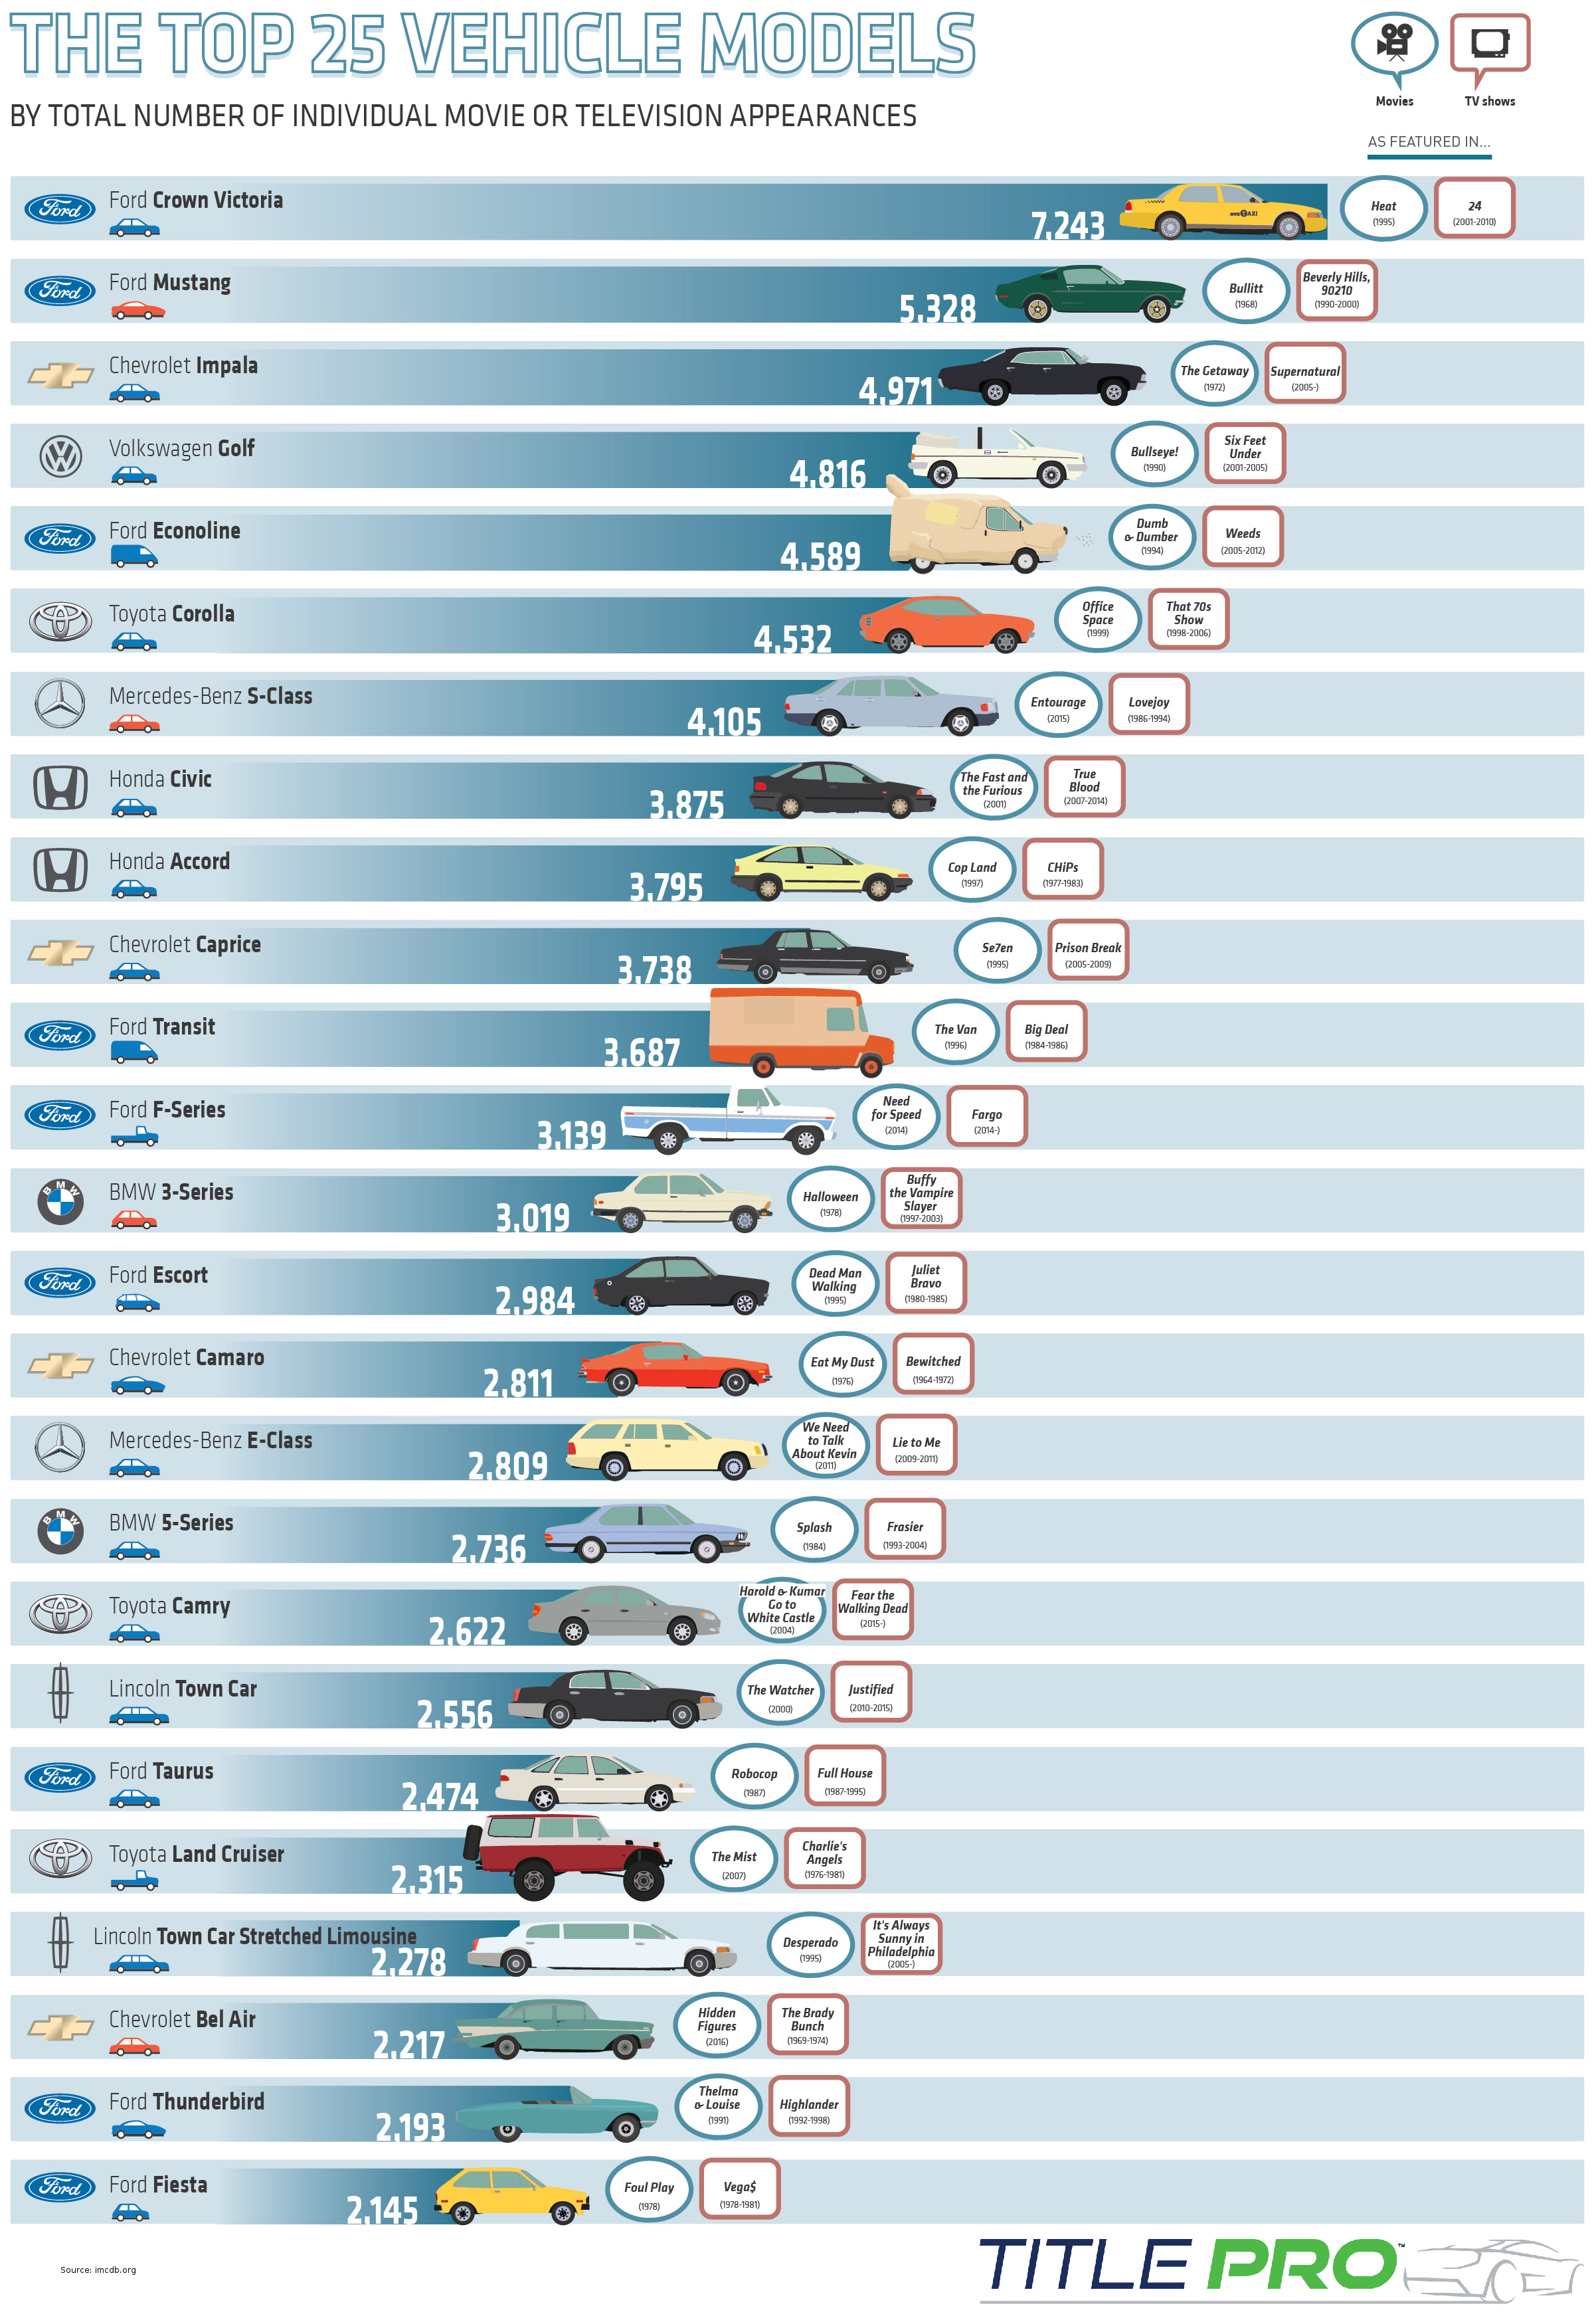 25 Cars That Rule the Movies - Infographic